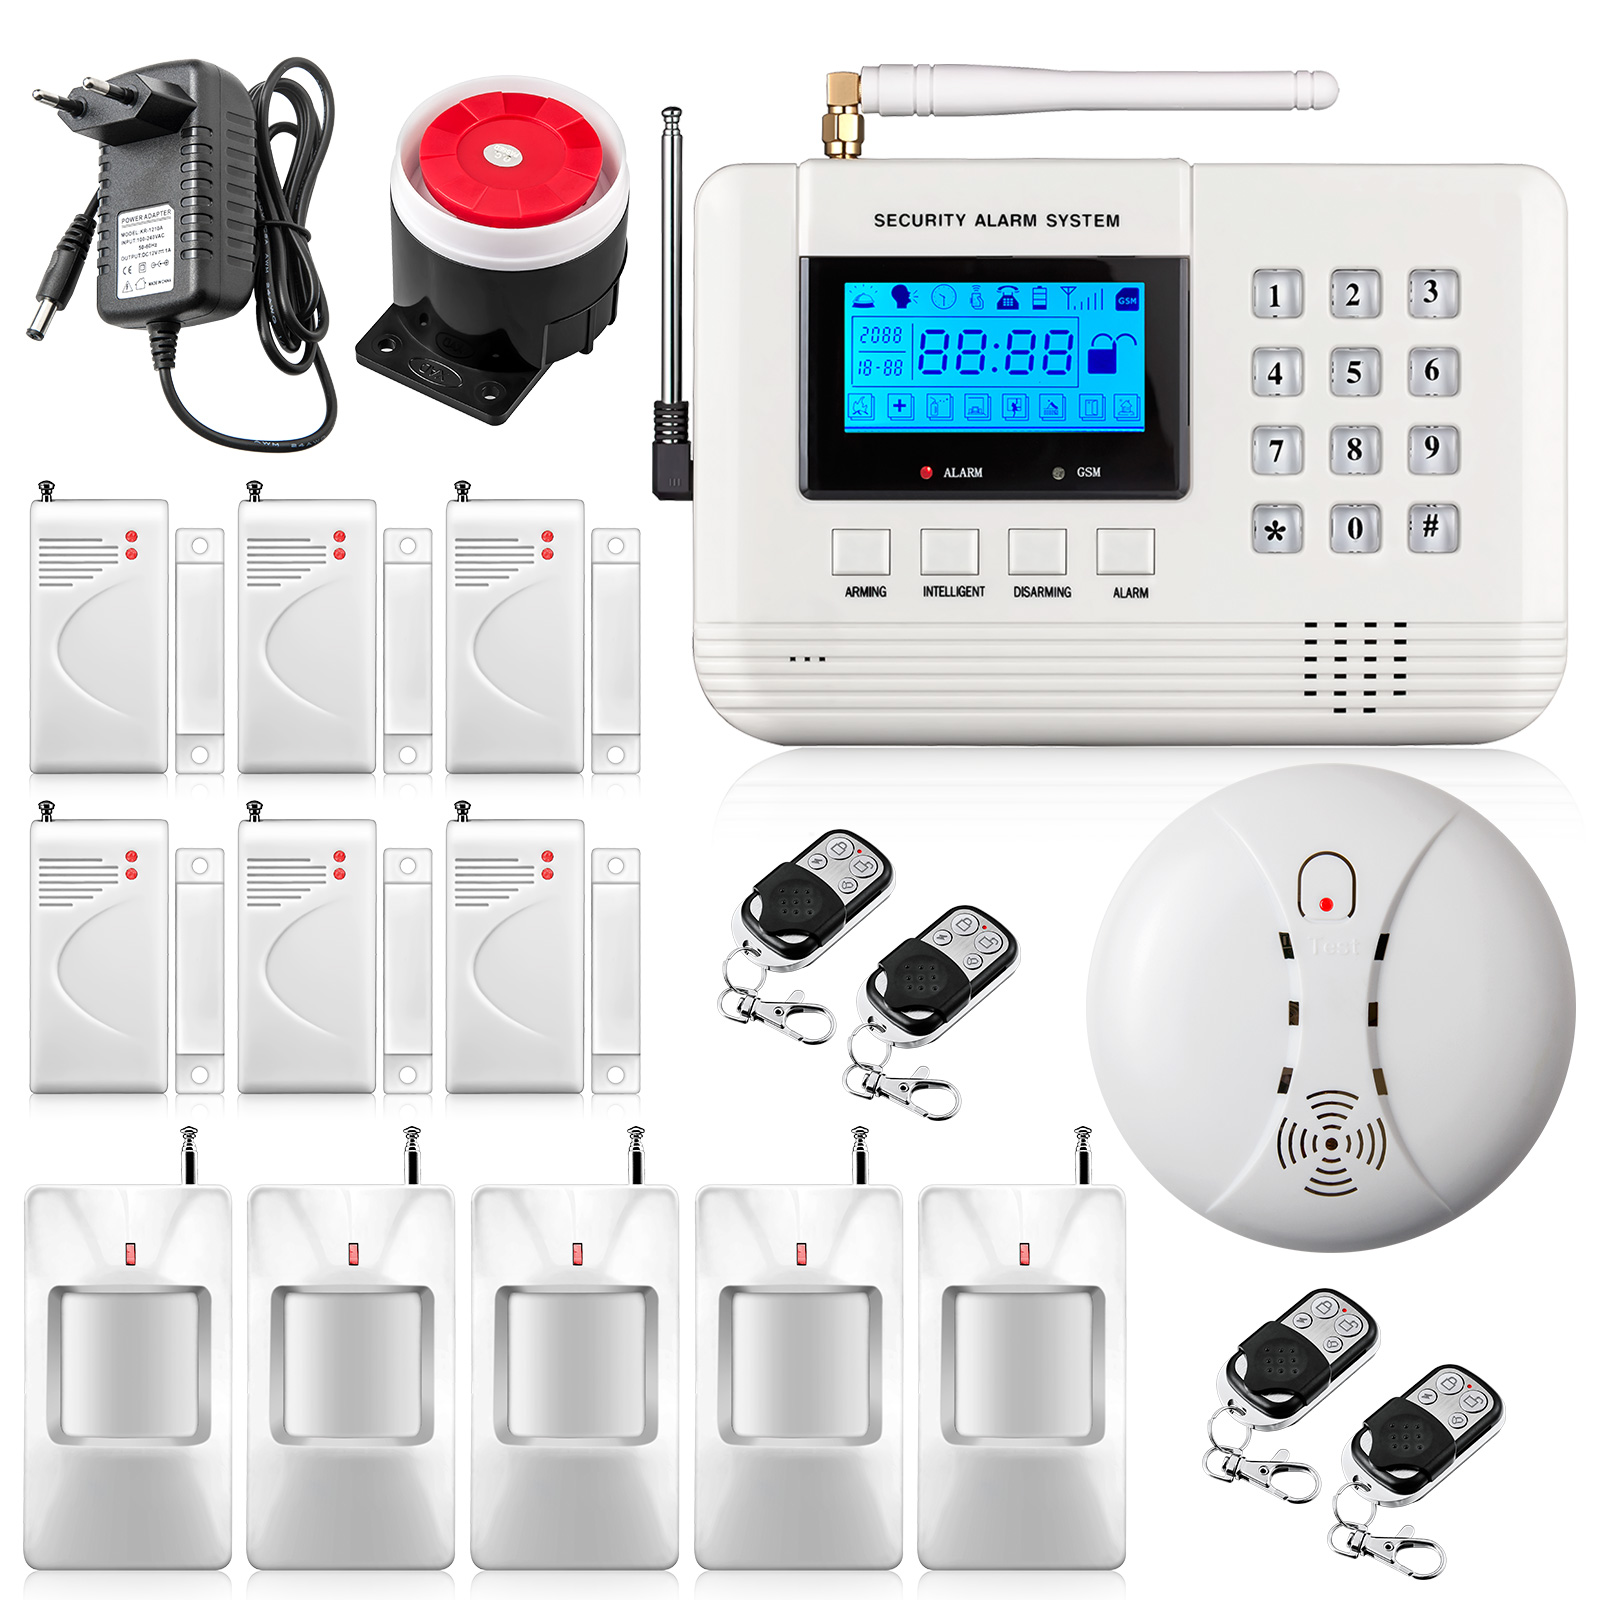 new arrival 433mhz remote control wireless gsm pstn network security alarm system auto dial with. Black Bedroom Furniture Sets. Home Design Ideas